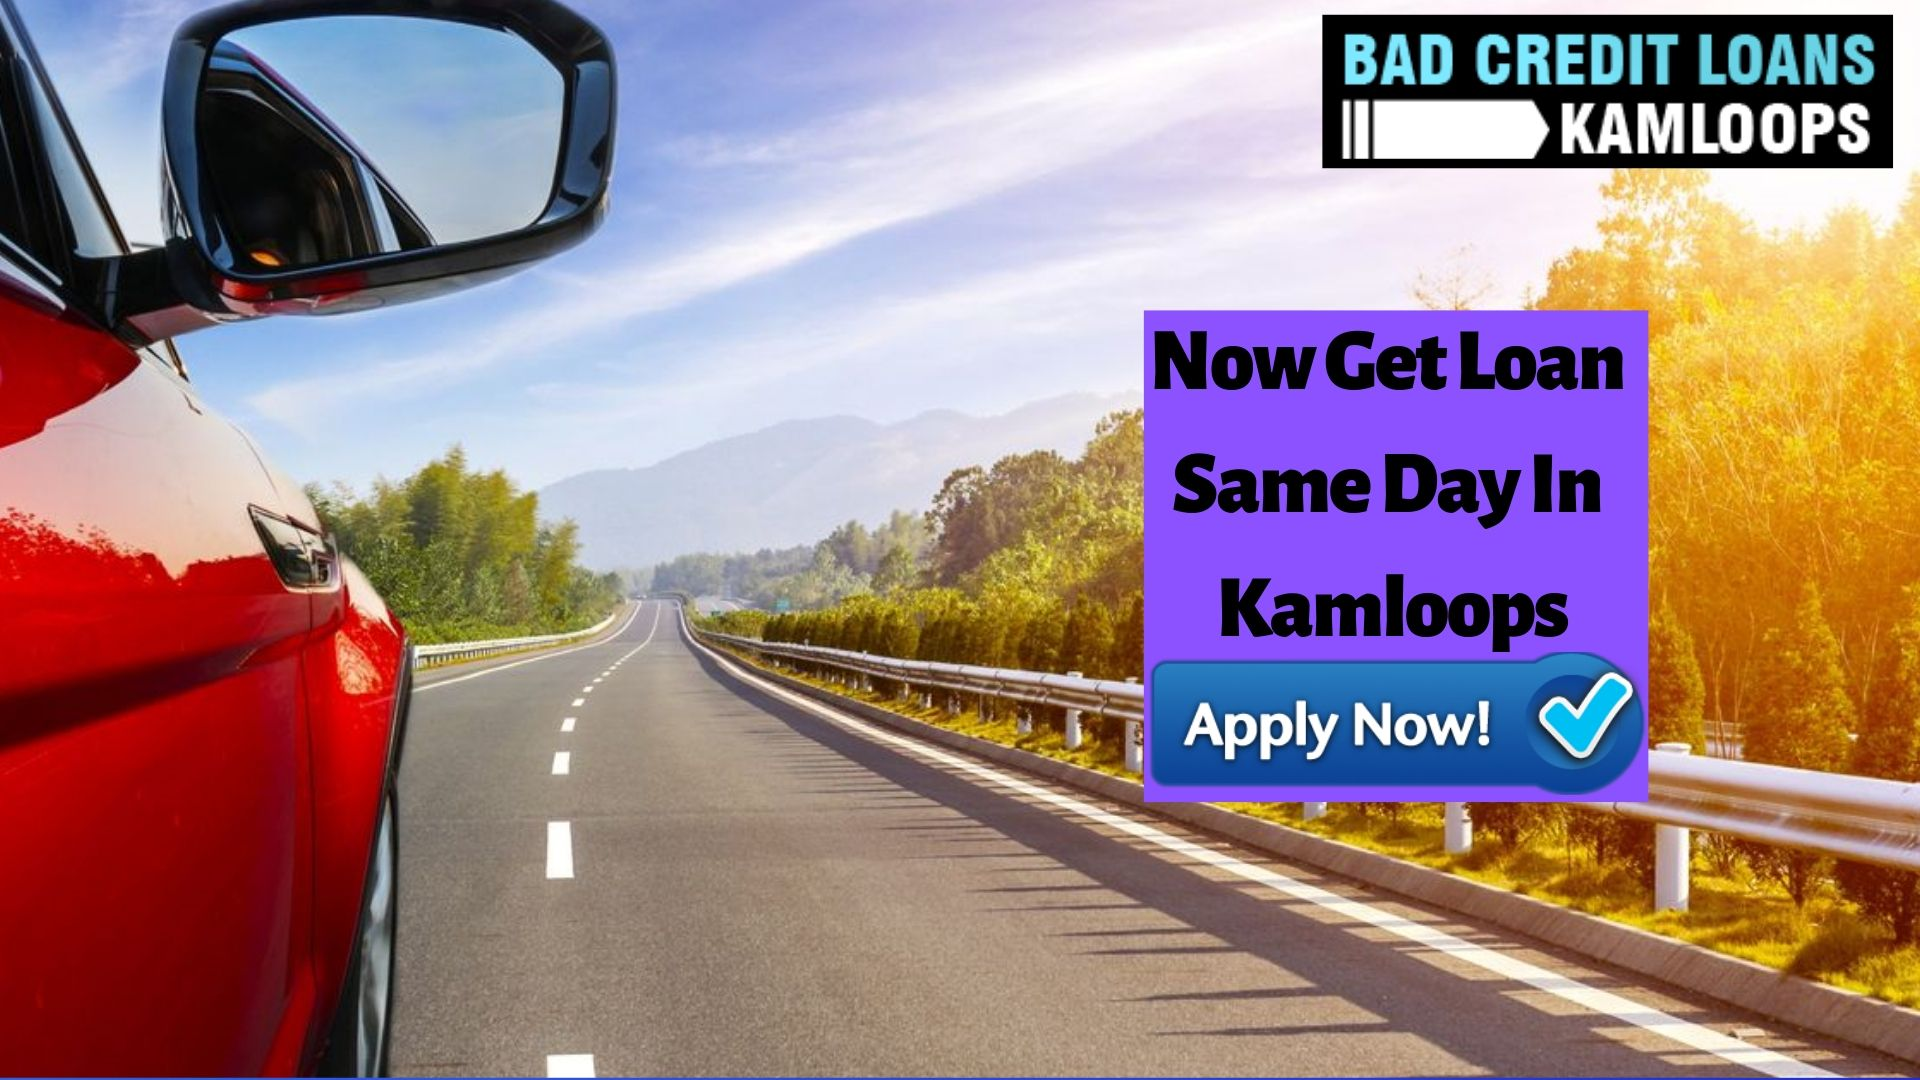 Now Get Car Title Loan In Kamloops The Same Day If You Need Money